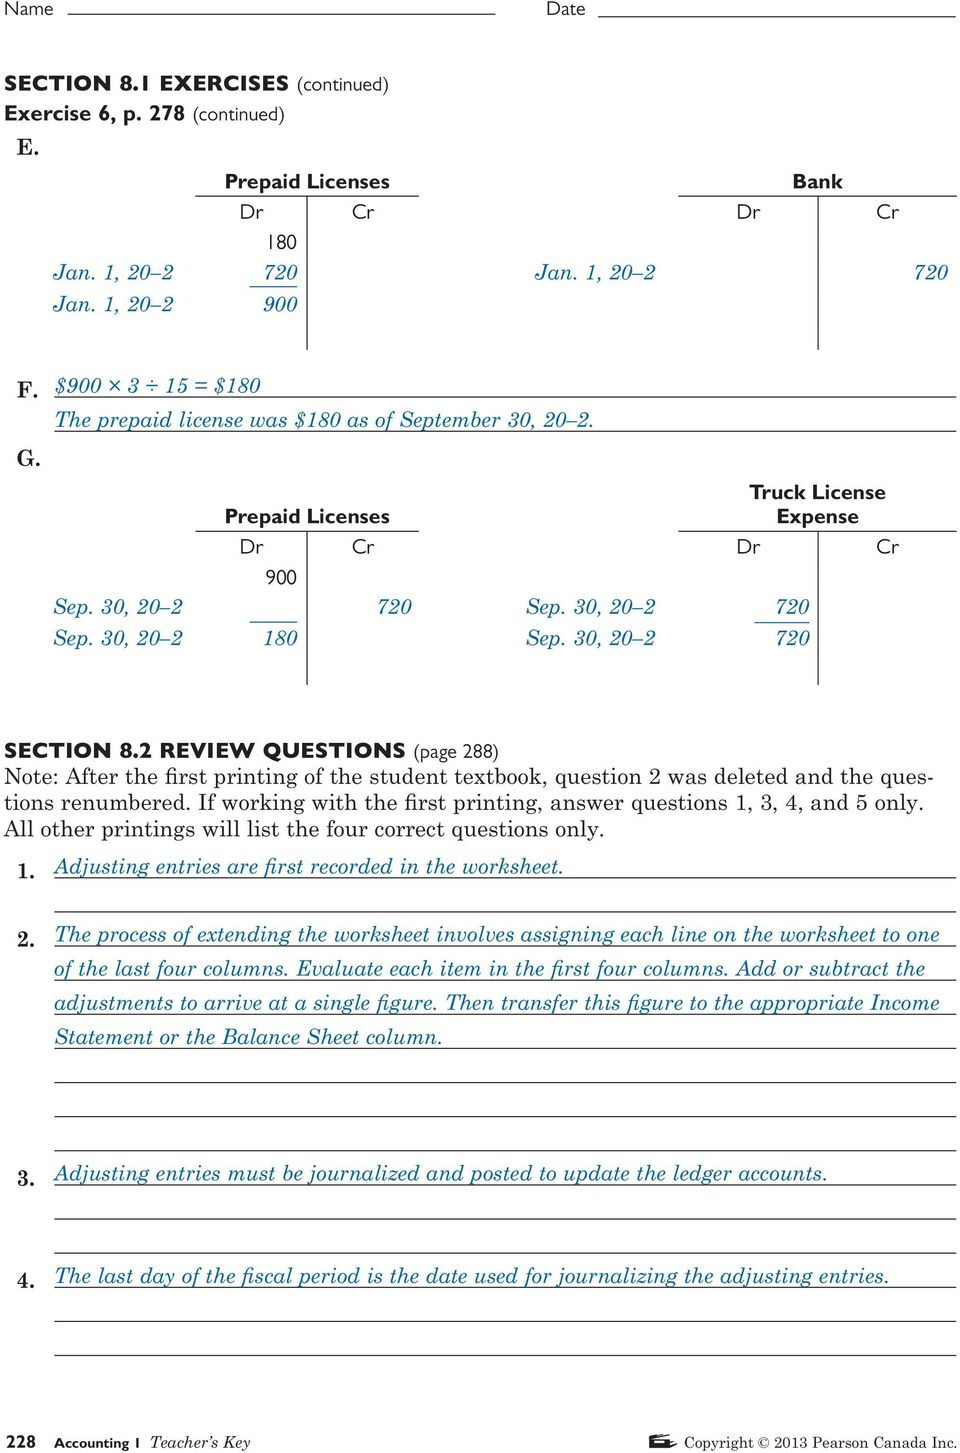 Accounting 1 Problem 18 5 Worksheet : Section review questions page pdf